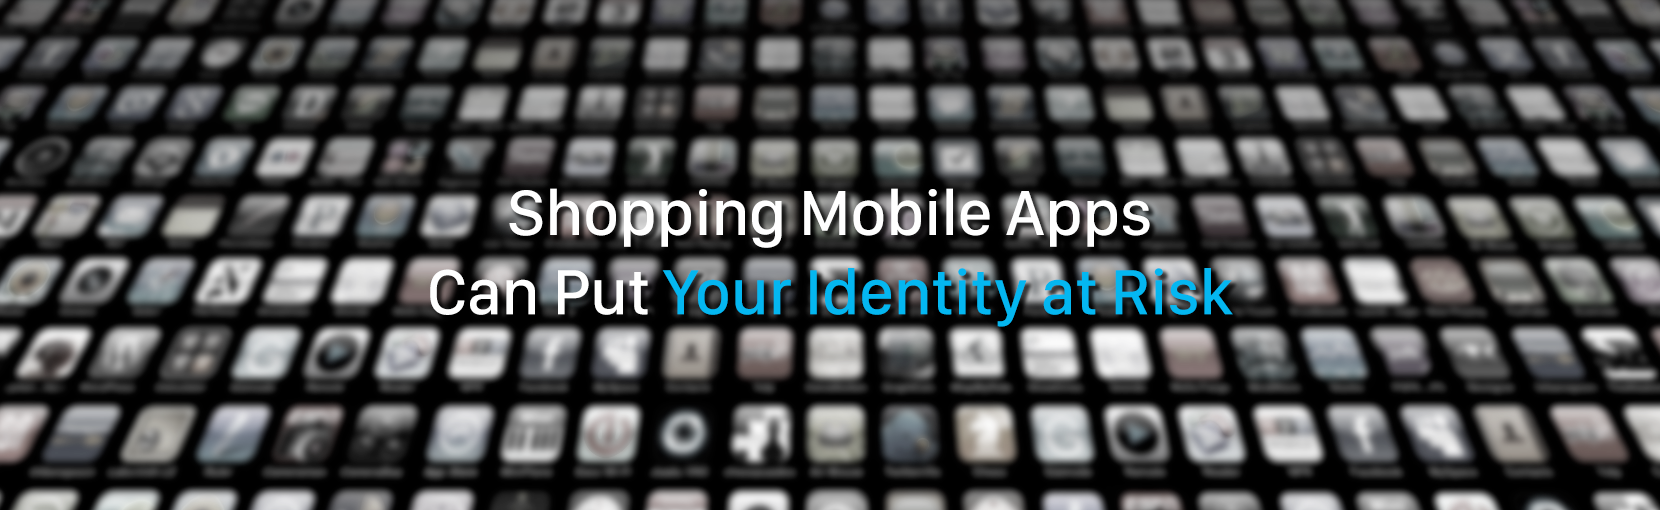 Shopping-Mobile-Apps-Can-Put-Your-Identity-at-Risk.png